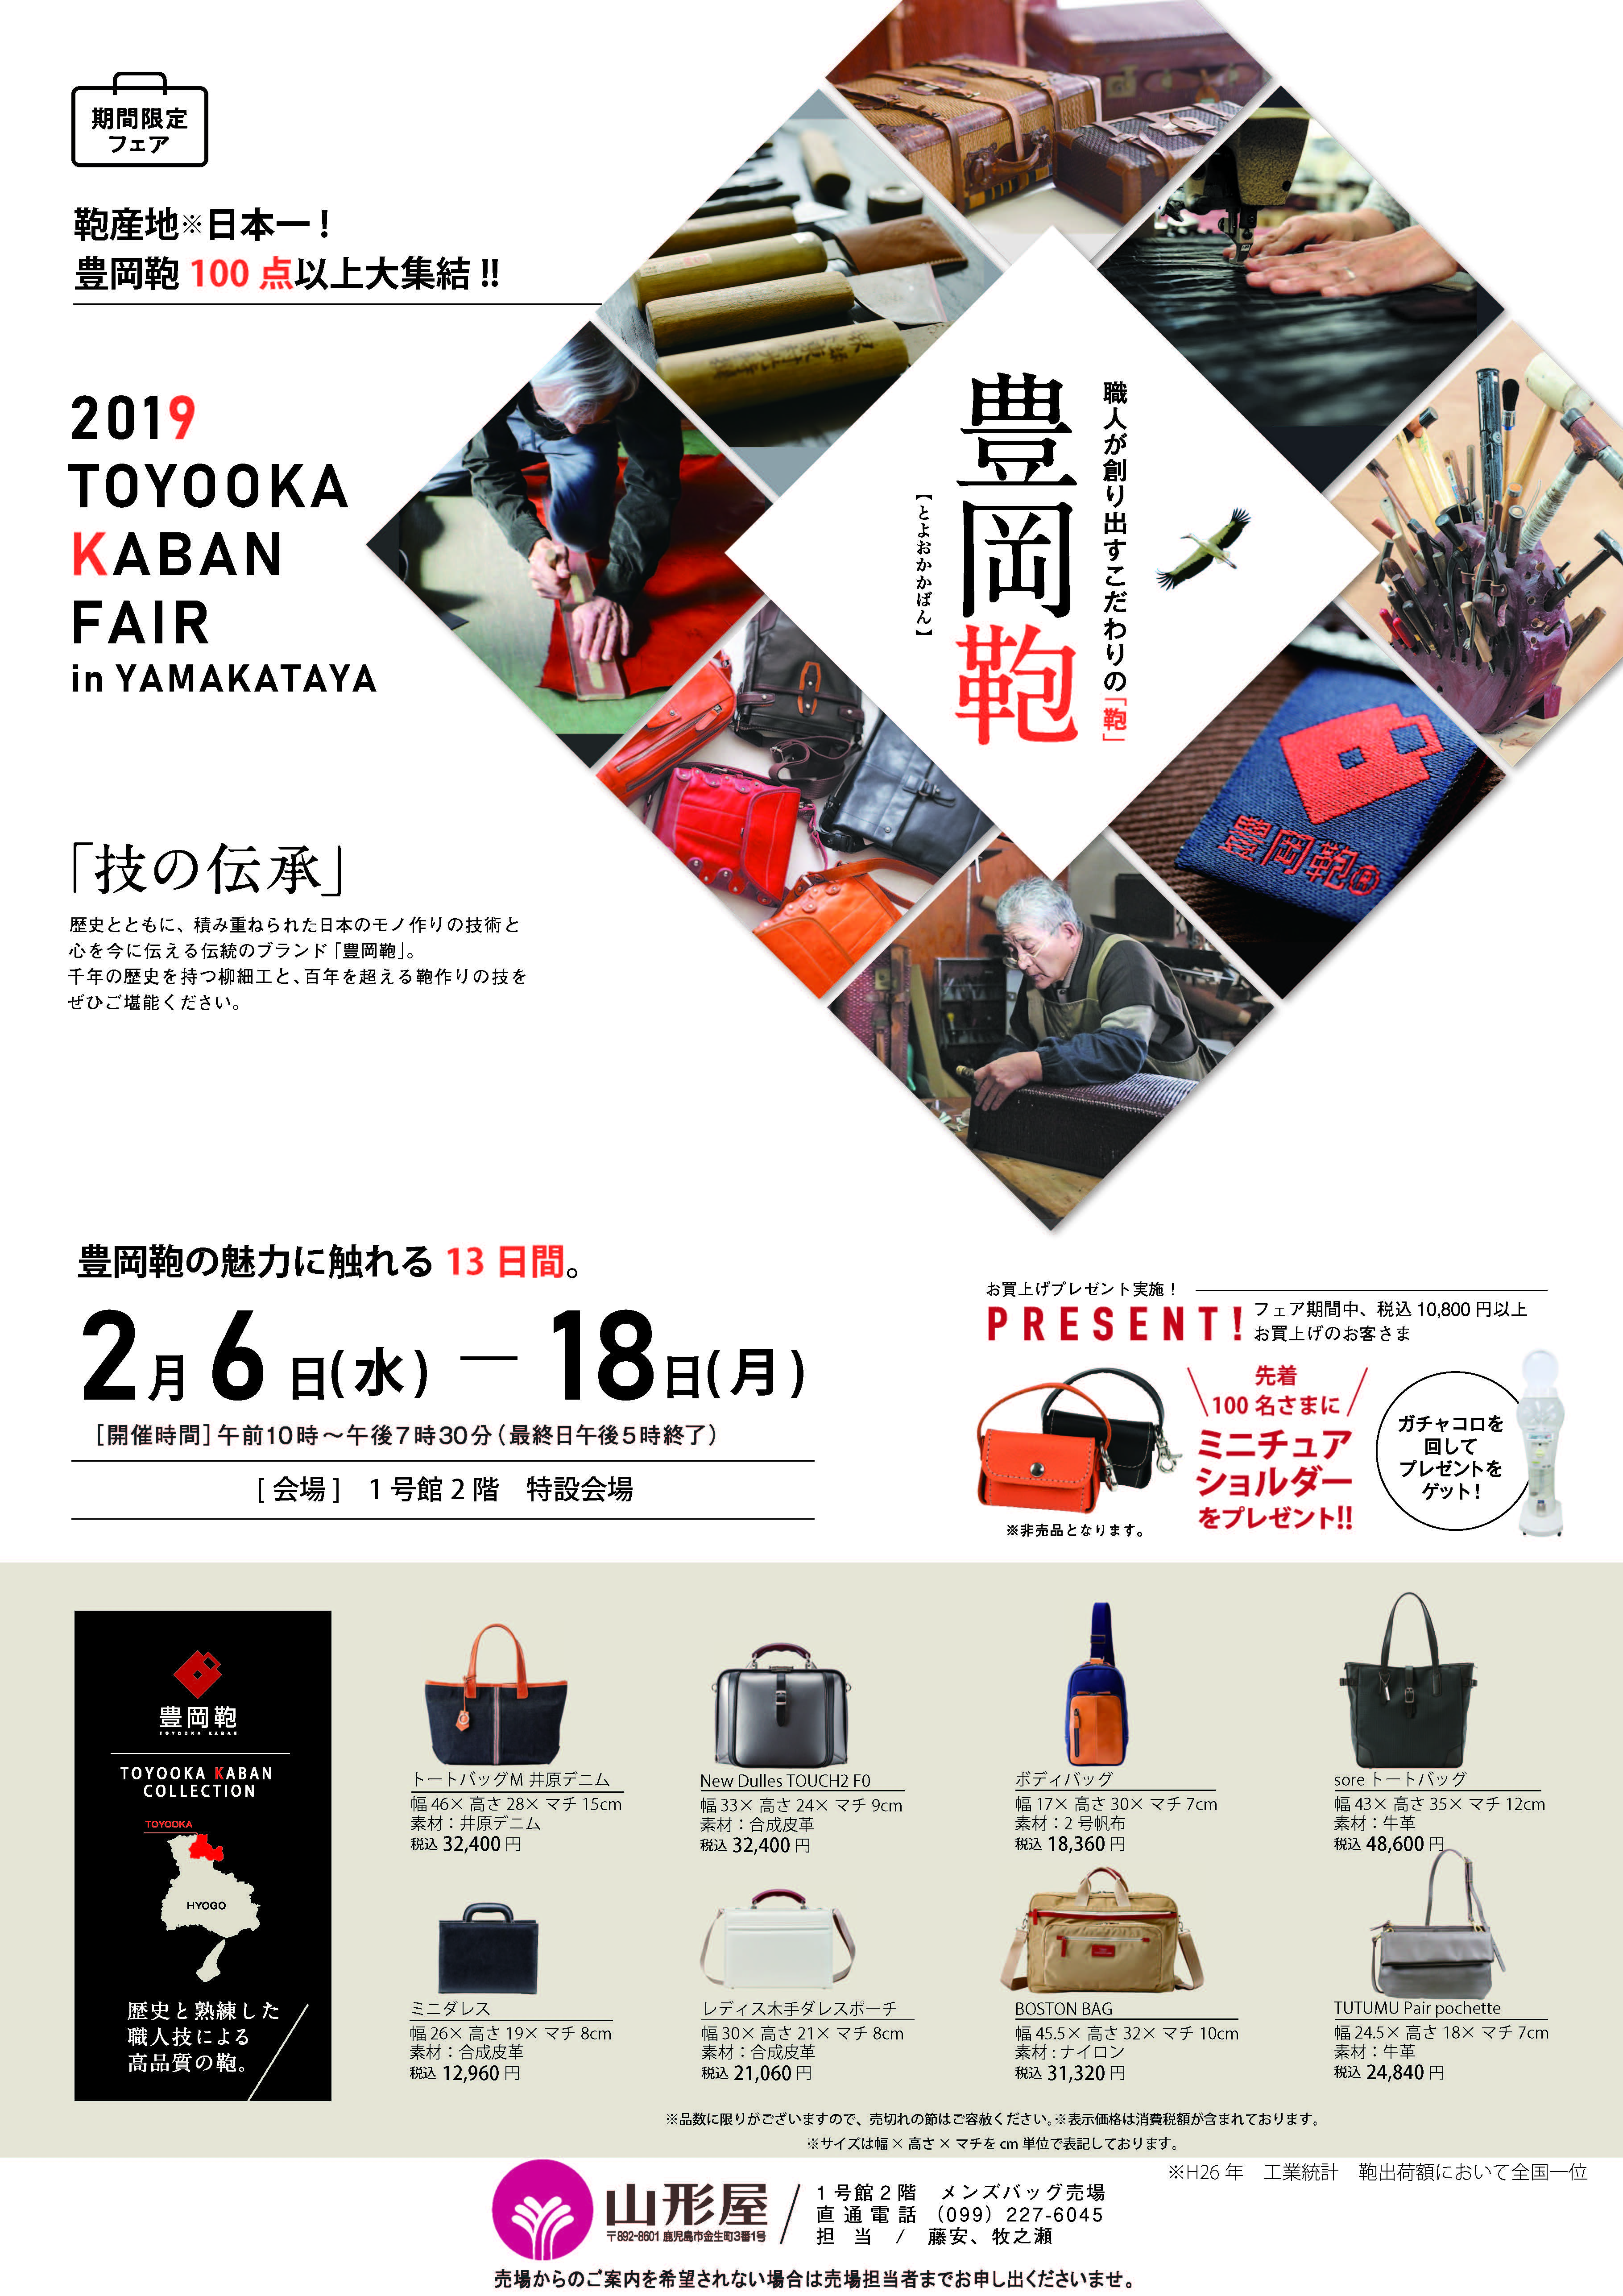 2019 TOYOOKA KABAN FAIR